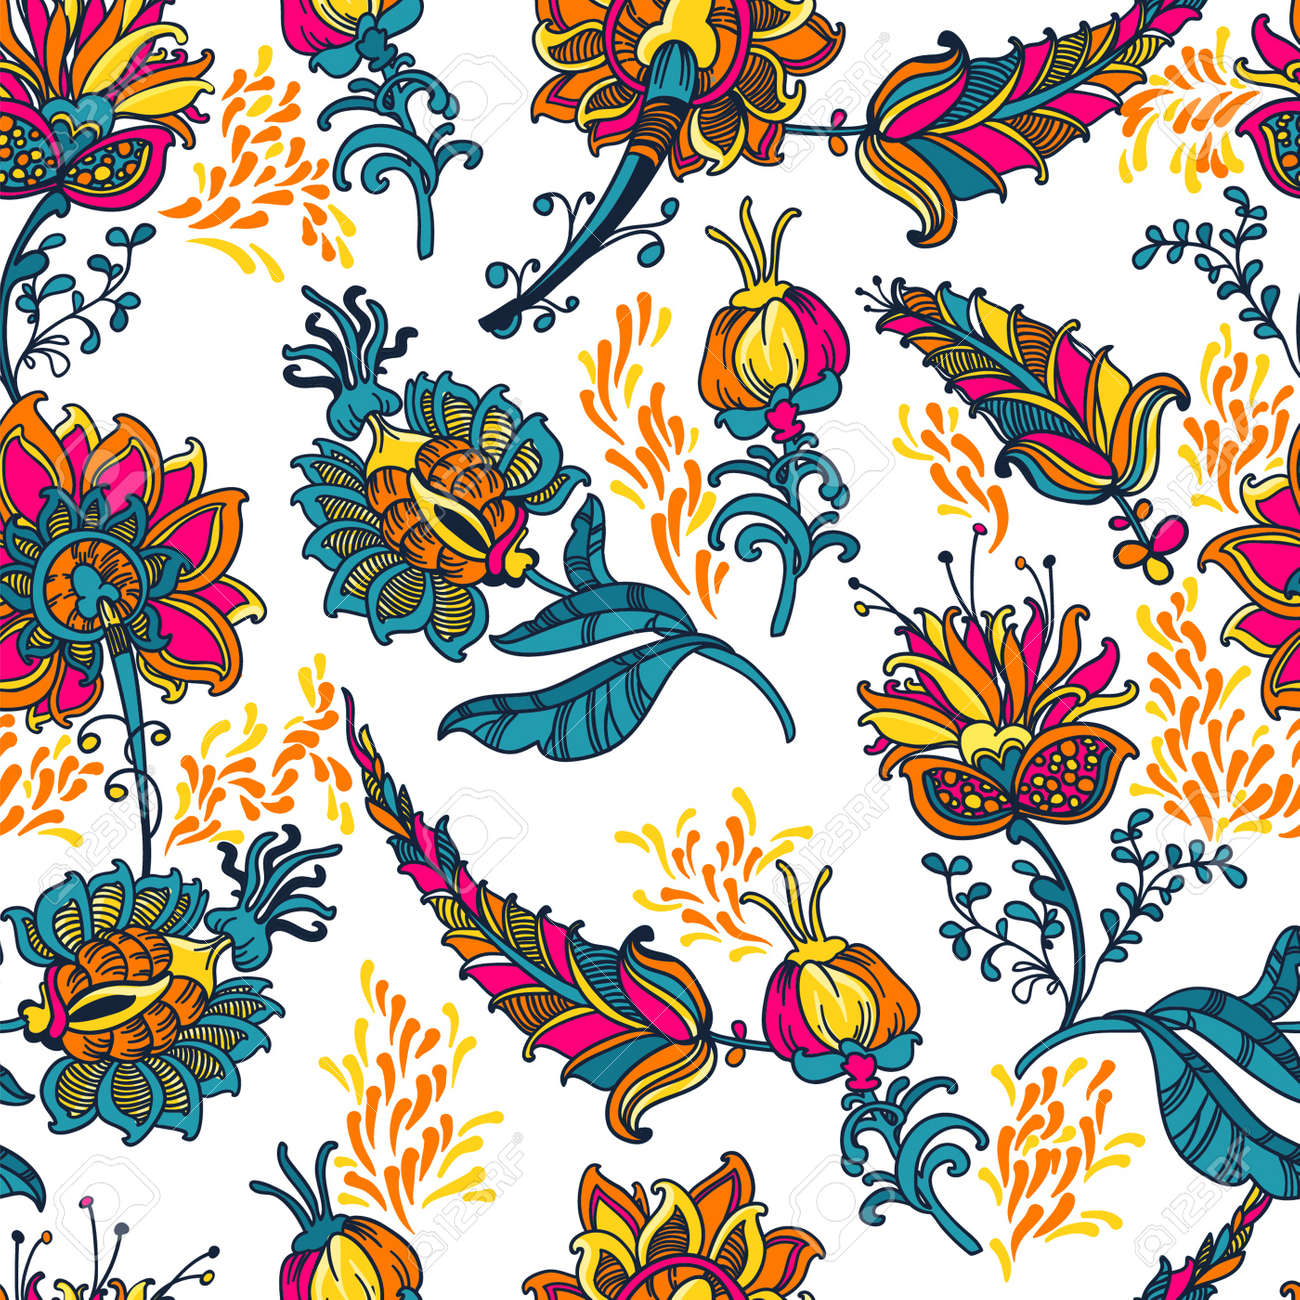 ornamental floral vector seamless background with many details - 18657338